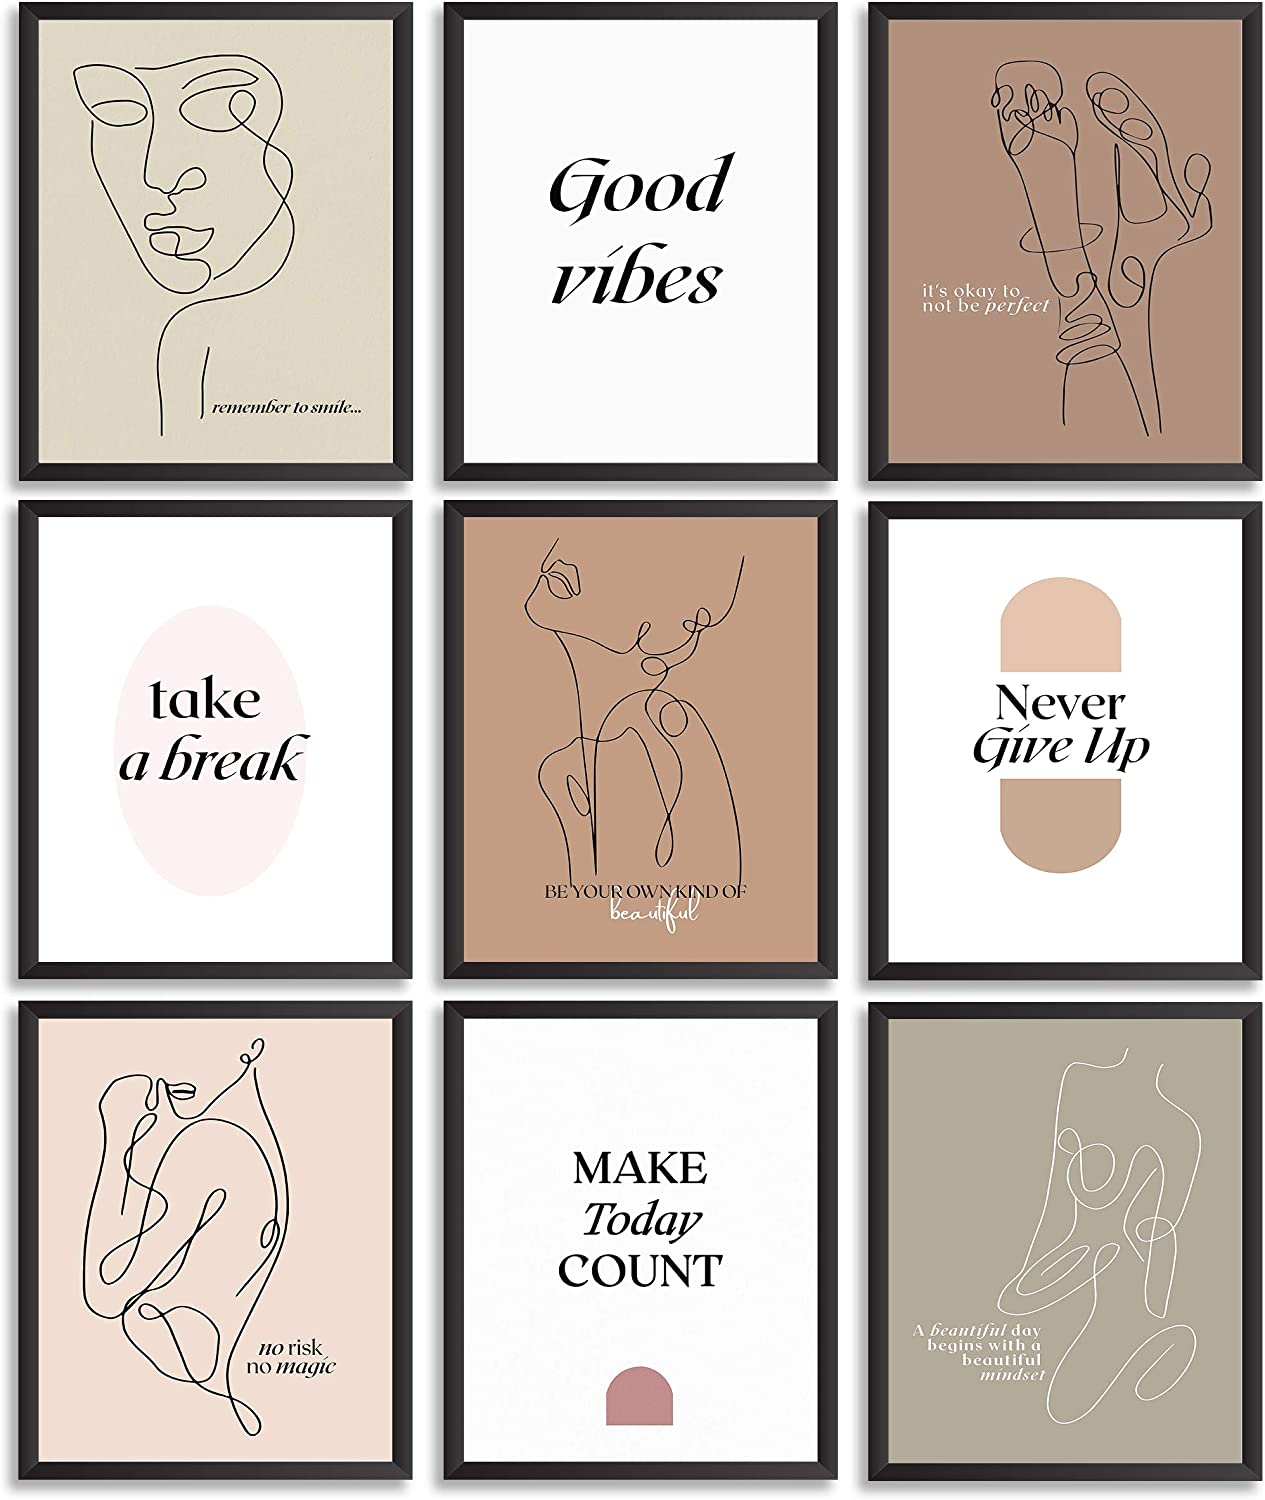 Inspirational quotes Wall Art - Motivational Wall Art posters set for Home or Office Wall Decor - Unique, Minimalist women Line Art Prints - Positive Affirmations modern room decor- (9Pcs UNFRAMED)